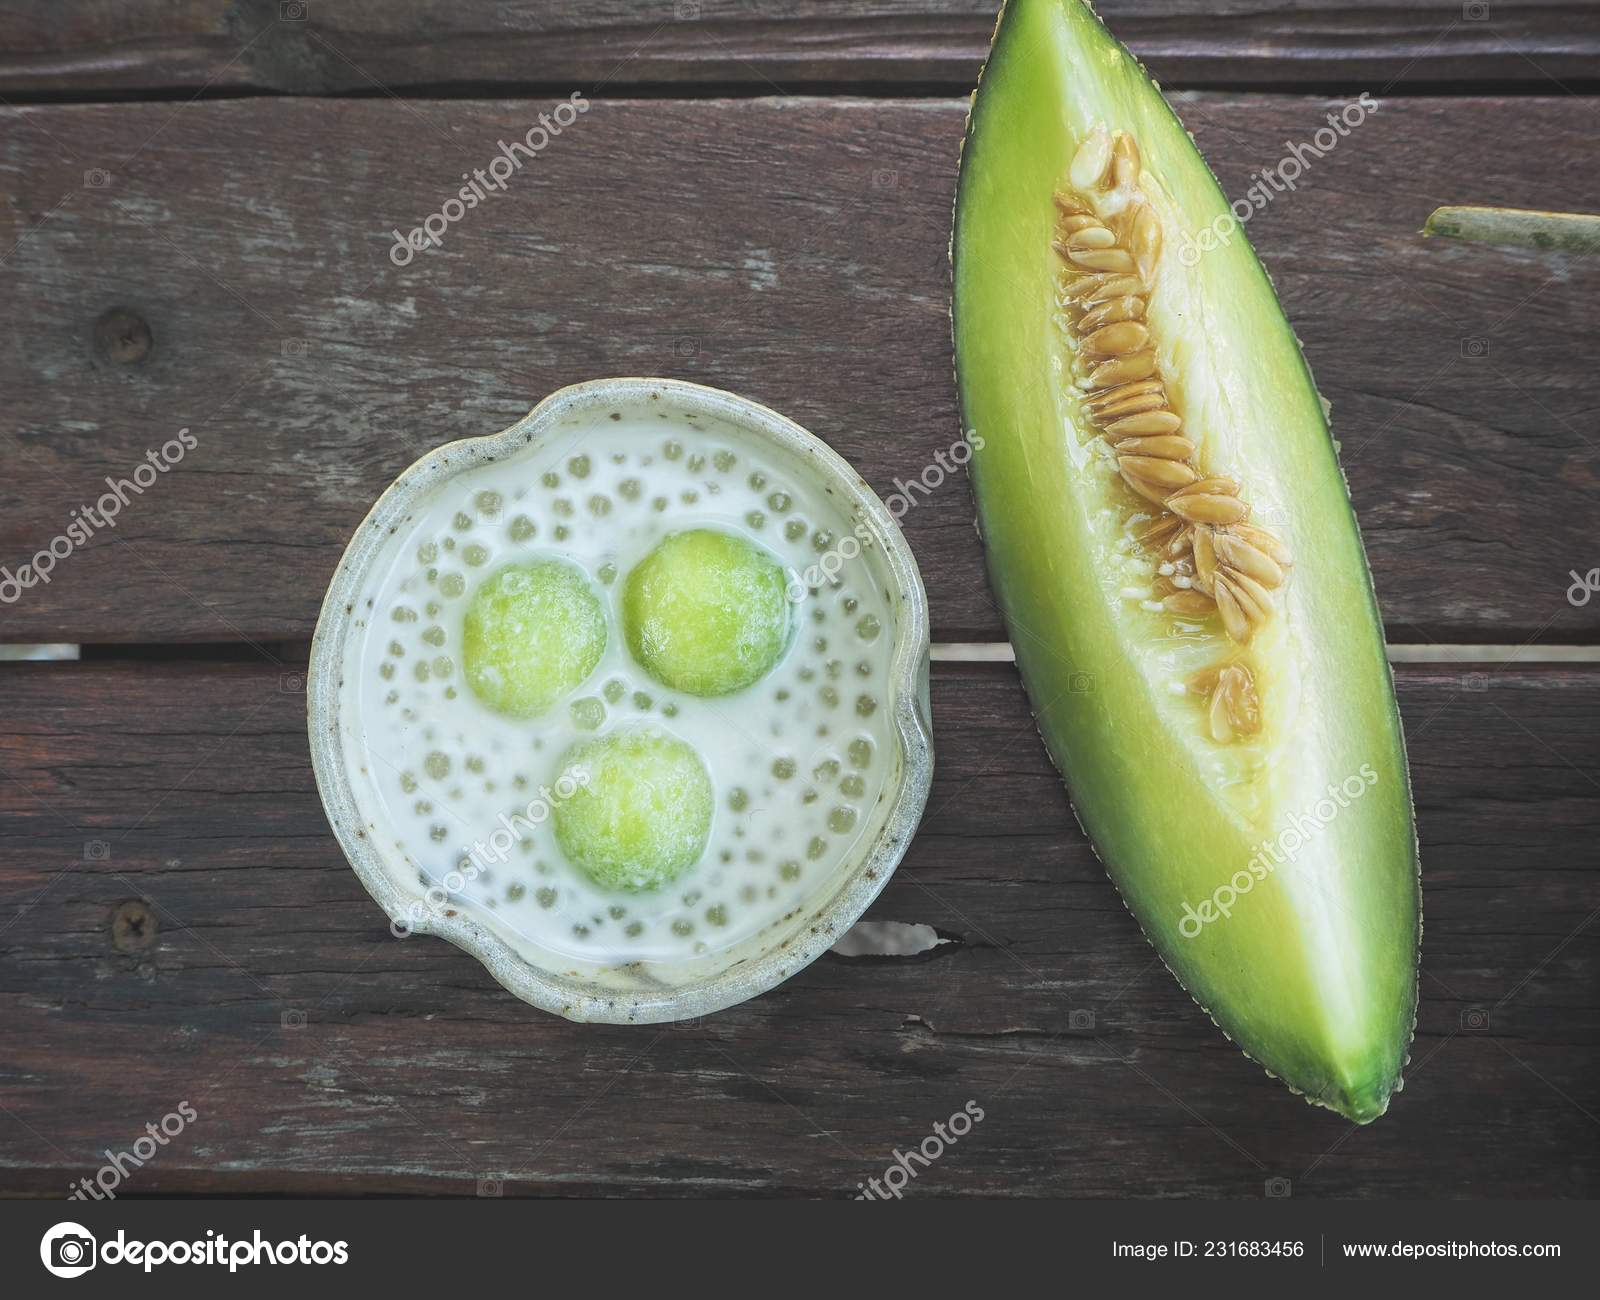 Dessert Cantaloupe Melon Coconut Milk Stock Photo C Luknaja 231683456 This week's edition of #shareyoursmoothies is just what you've been. depositphotos